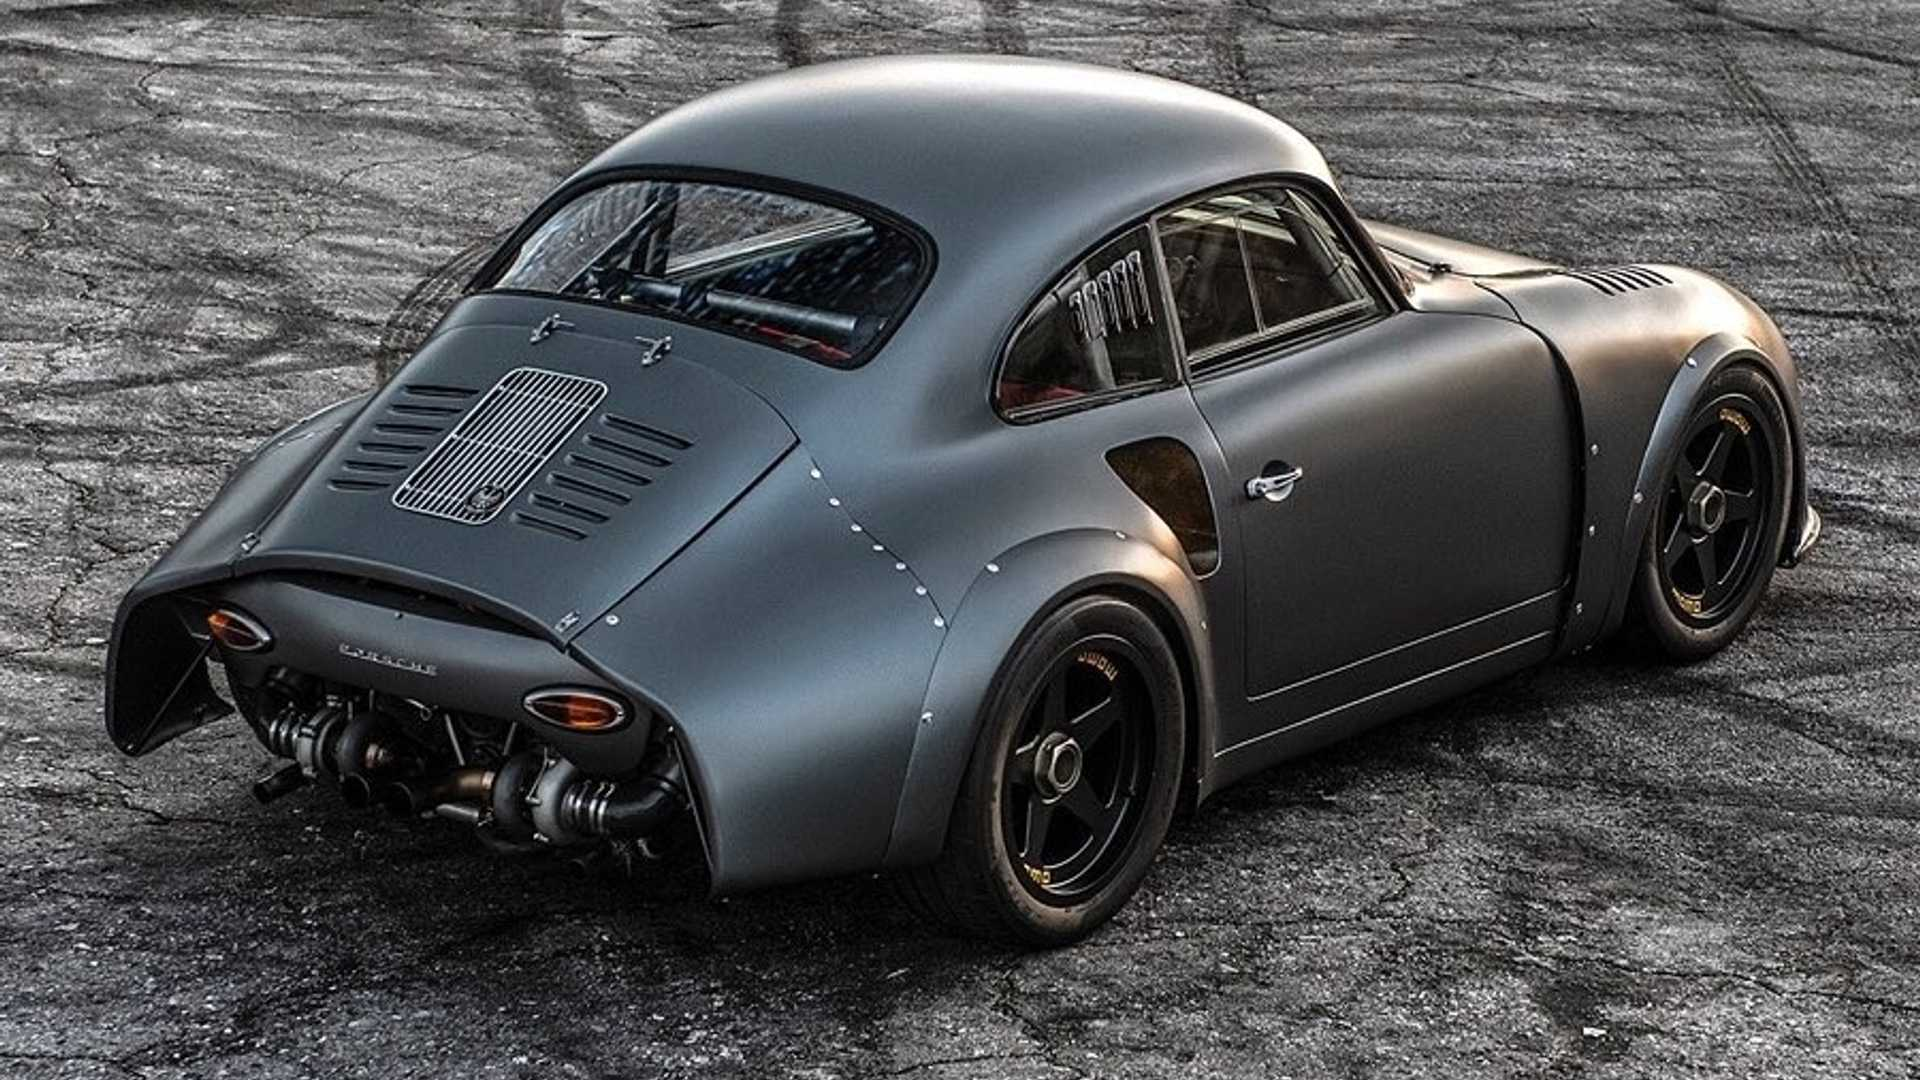 The 1960 Porsche 356 RSR from Emory Motorsport